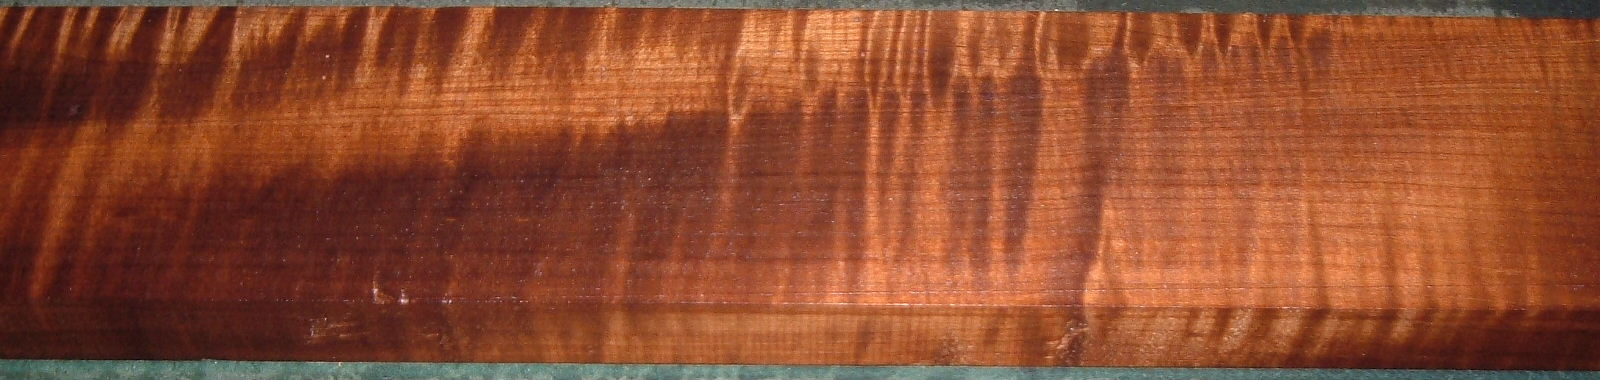 QRM2001-20, 1-3/16x3-7/8x51, Roasted Torrefied, Curly Tiger Quartersawn Maple